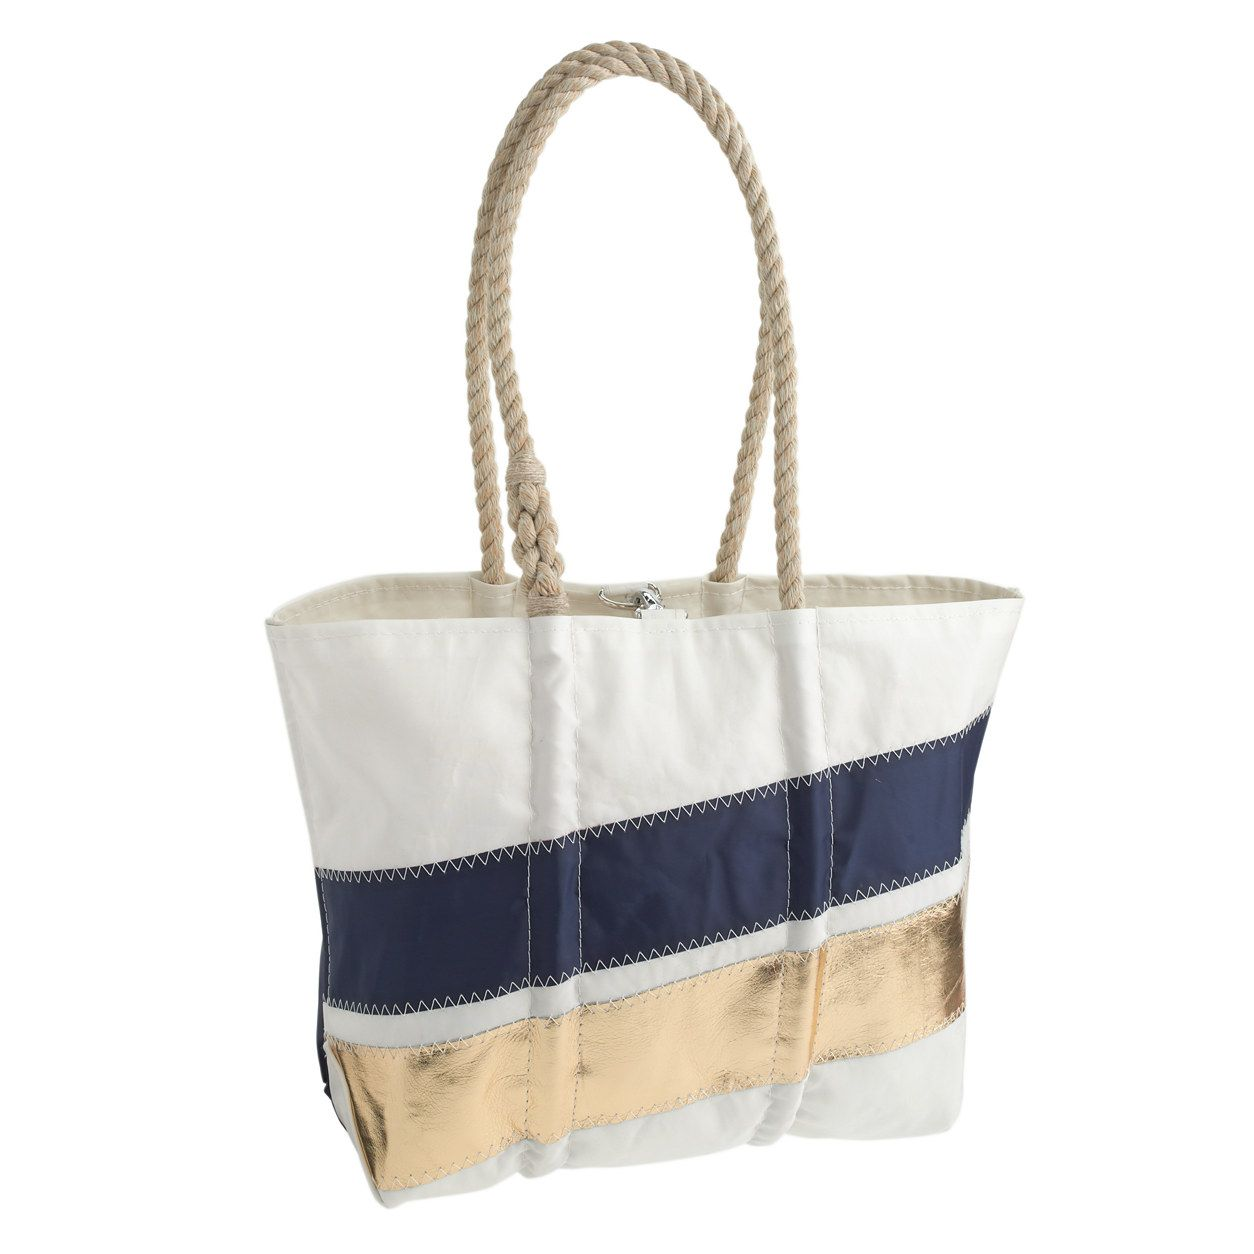 Sea Bags For J Crew Diaper Bag